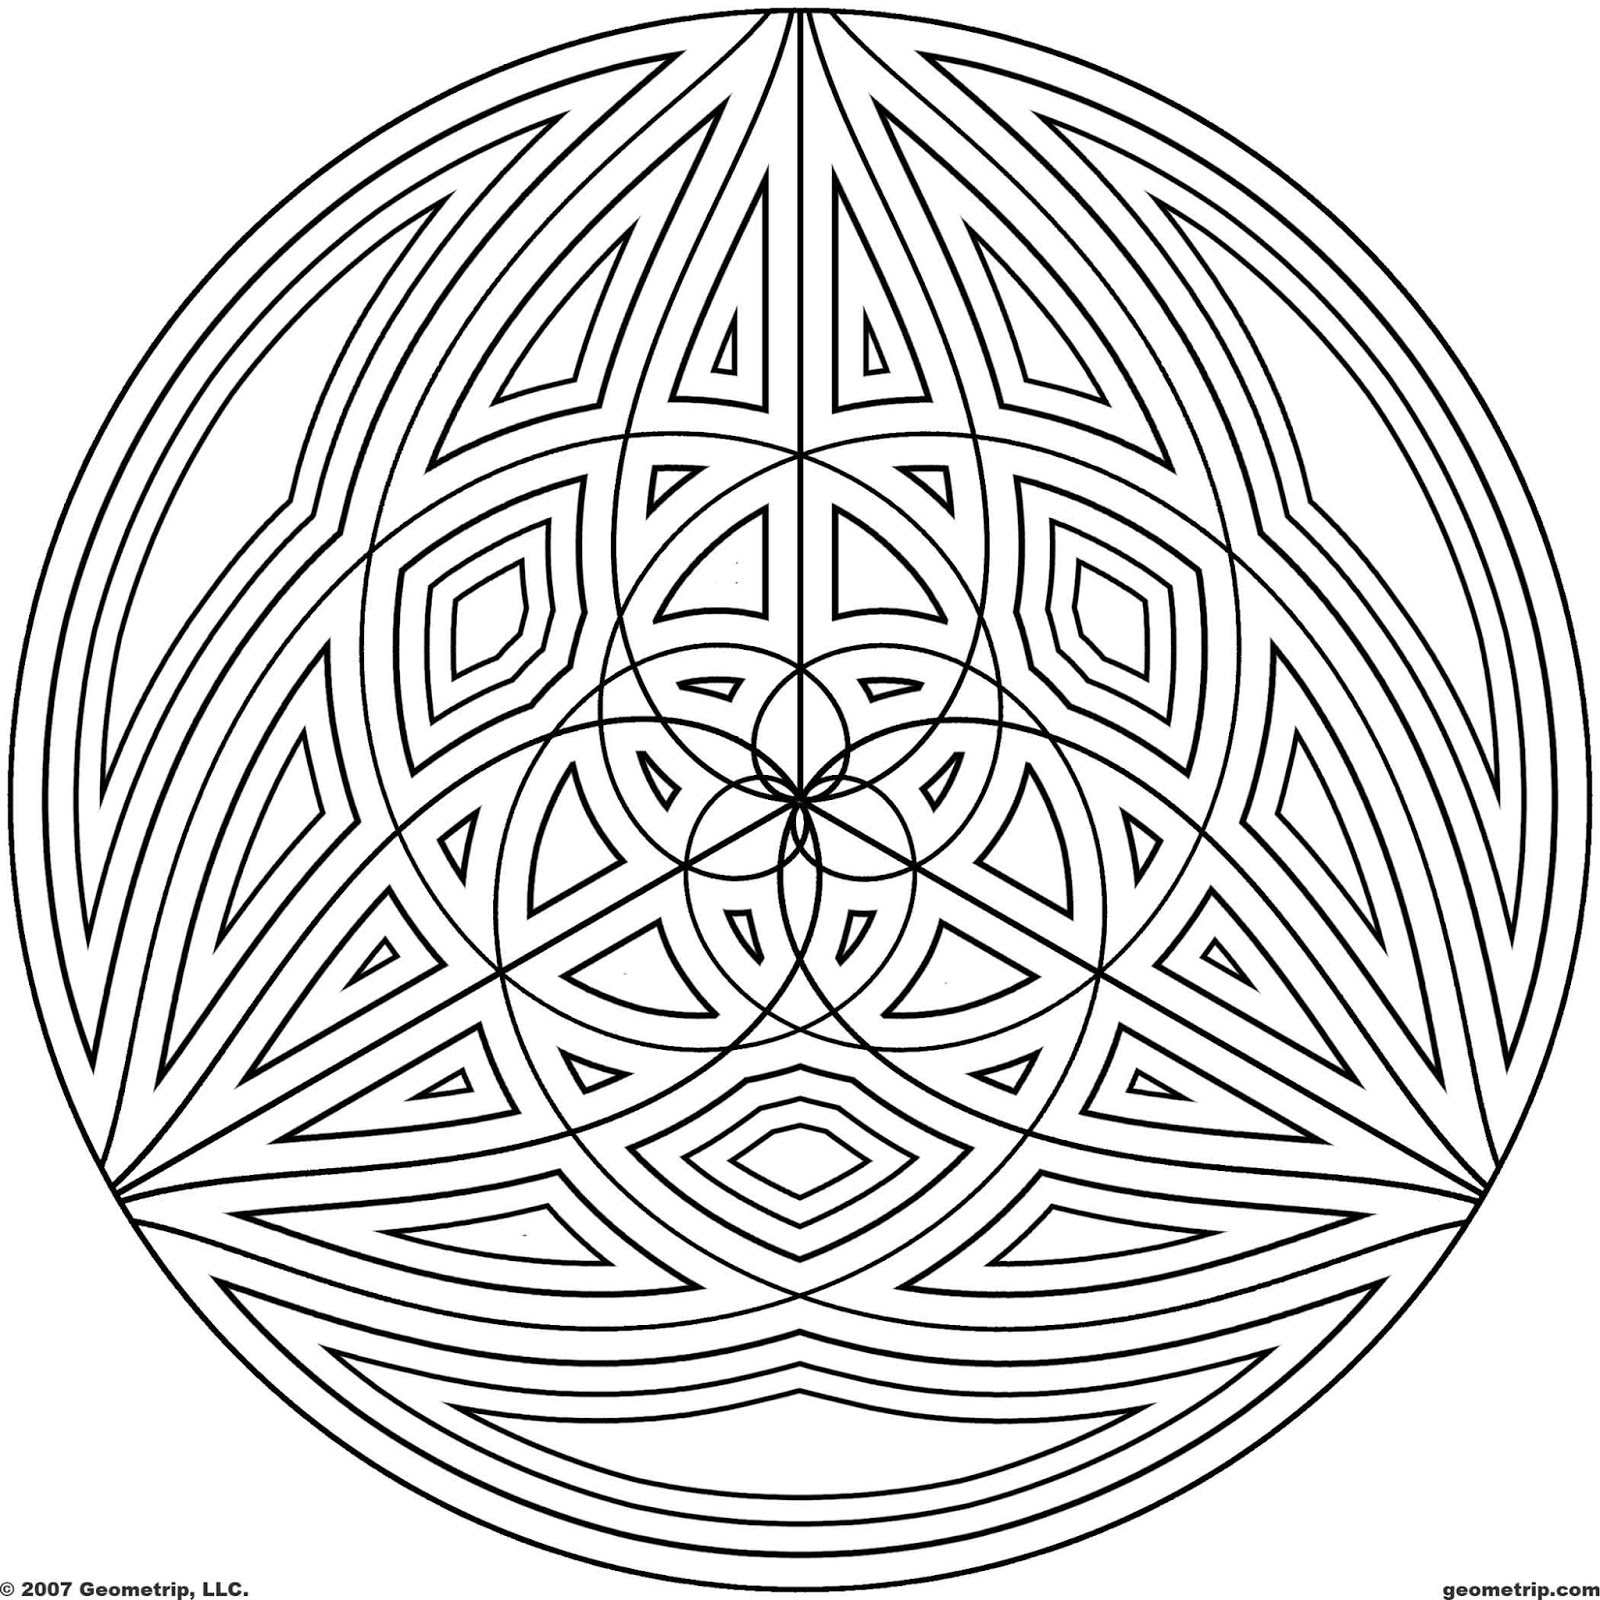 coloring pages of cool designs cool coloring designs clipart best of designs pages cool coloring